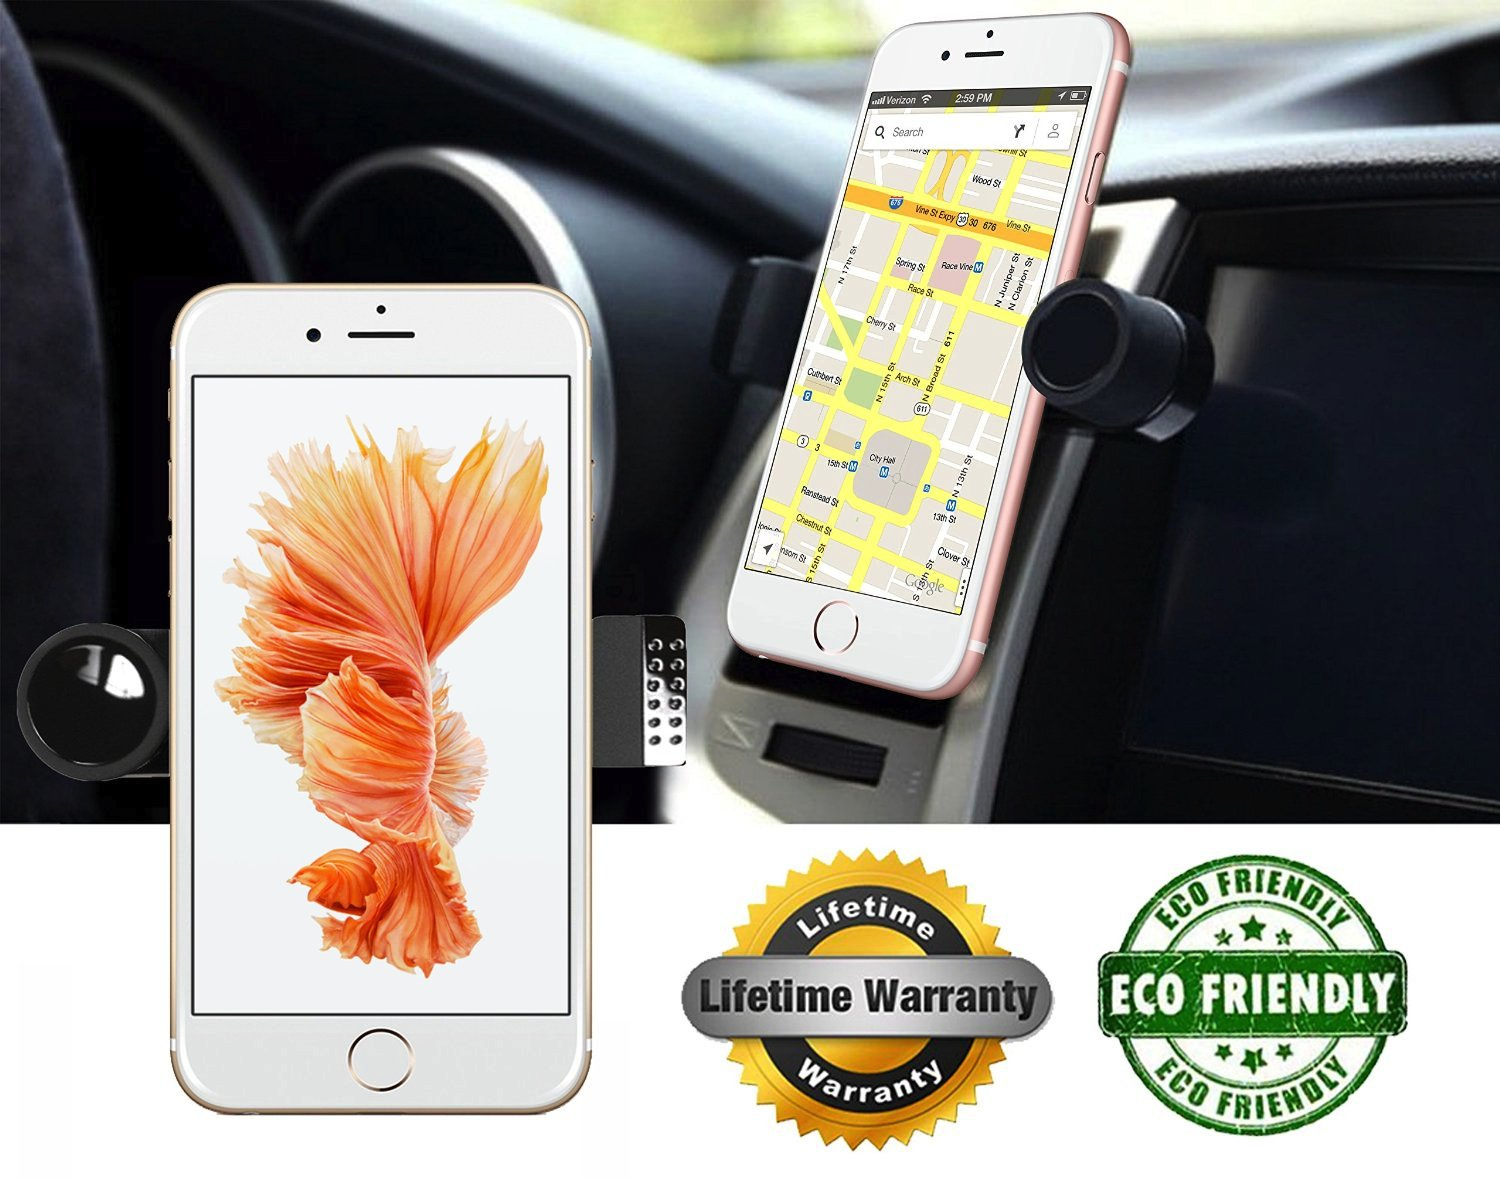 Luxury Car Phone Mount Fits All Vents 360 Rotation Works With Iphone 7 7 Plus.. 18